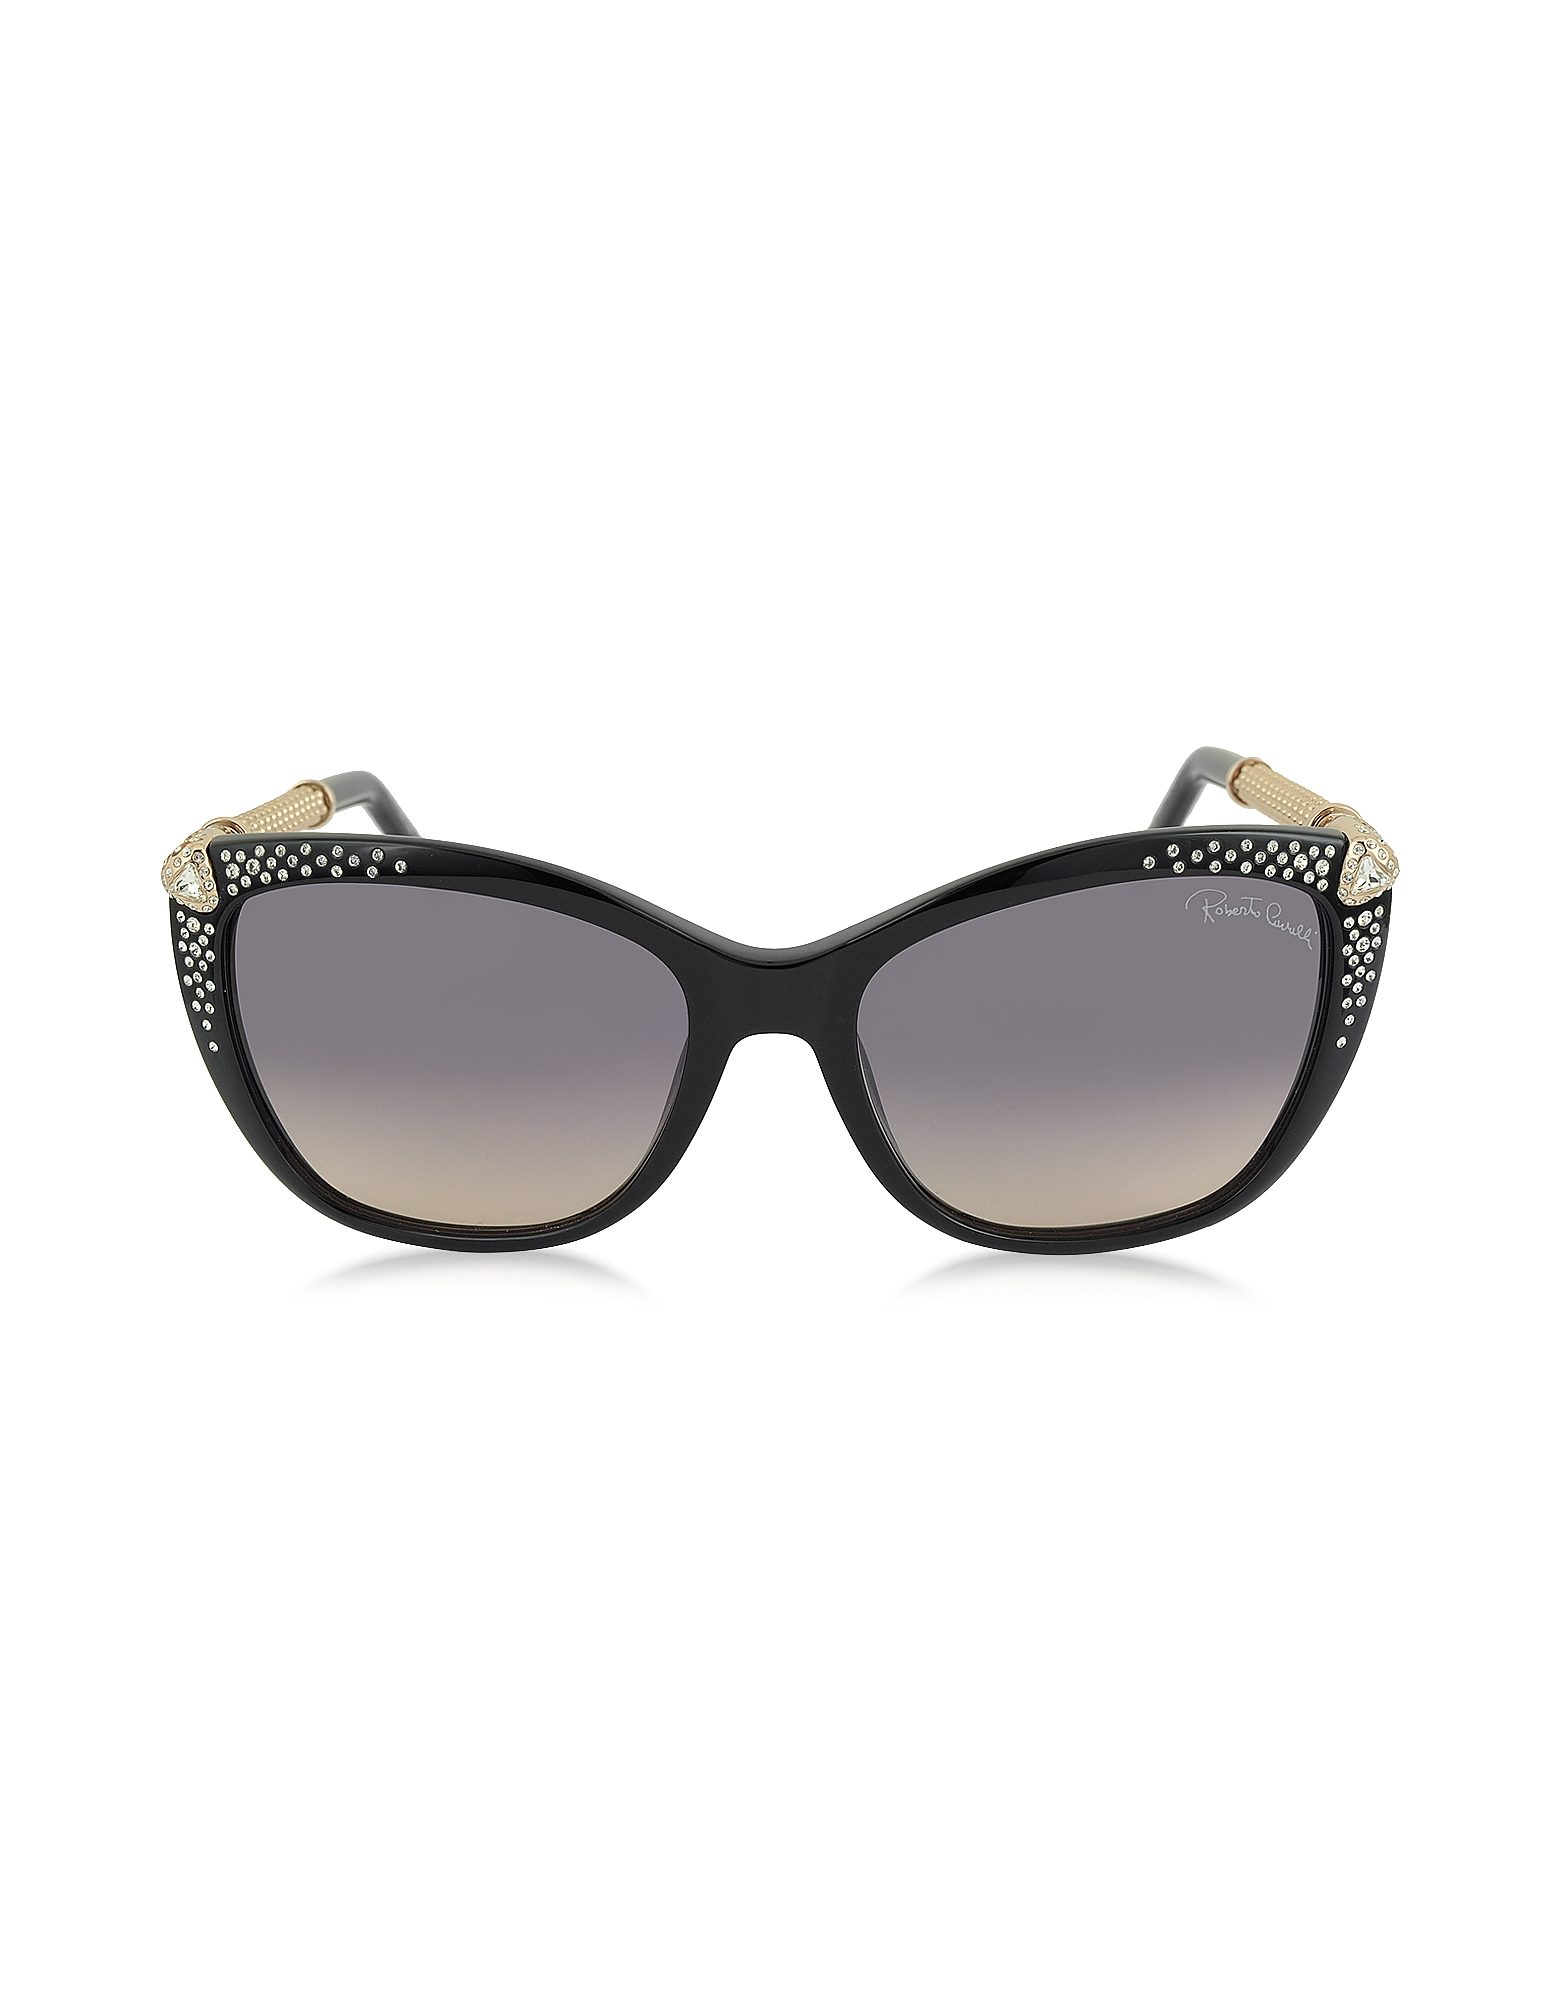 Roberto Cavalli Designer Sunglasses, TALITHA 978S Acetate and Crystals Cat Eye Women's Sunglasses